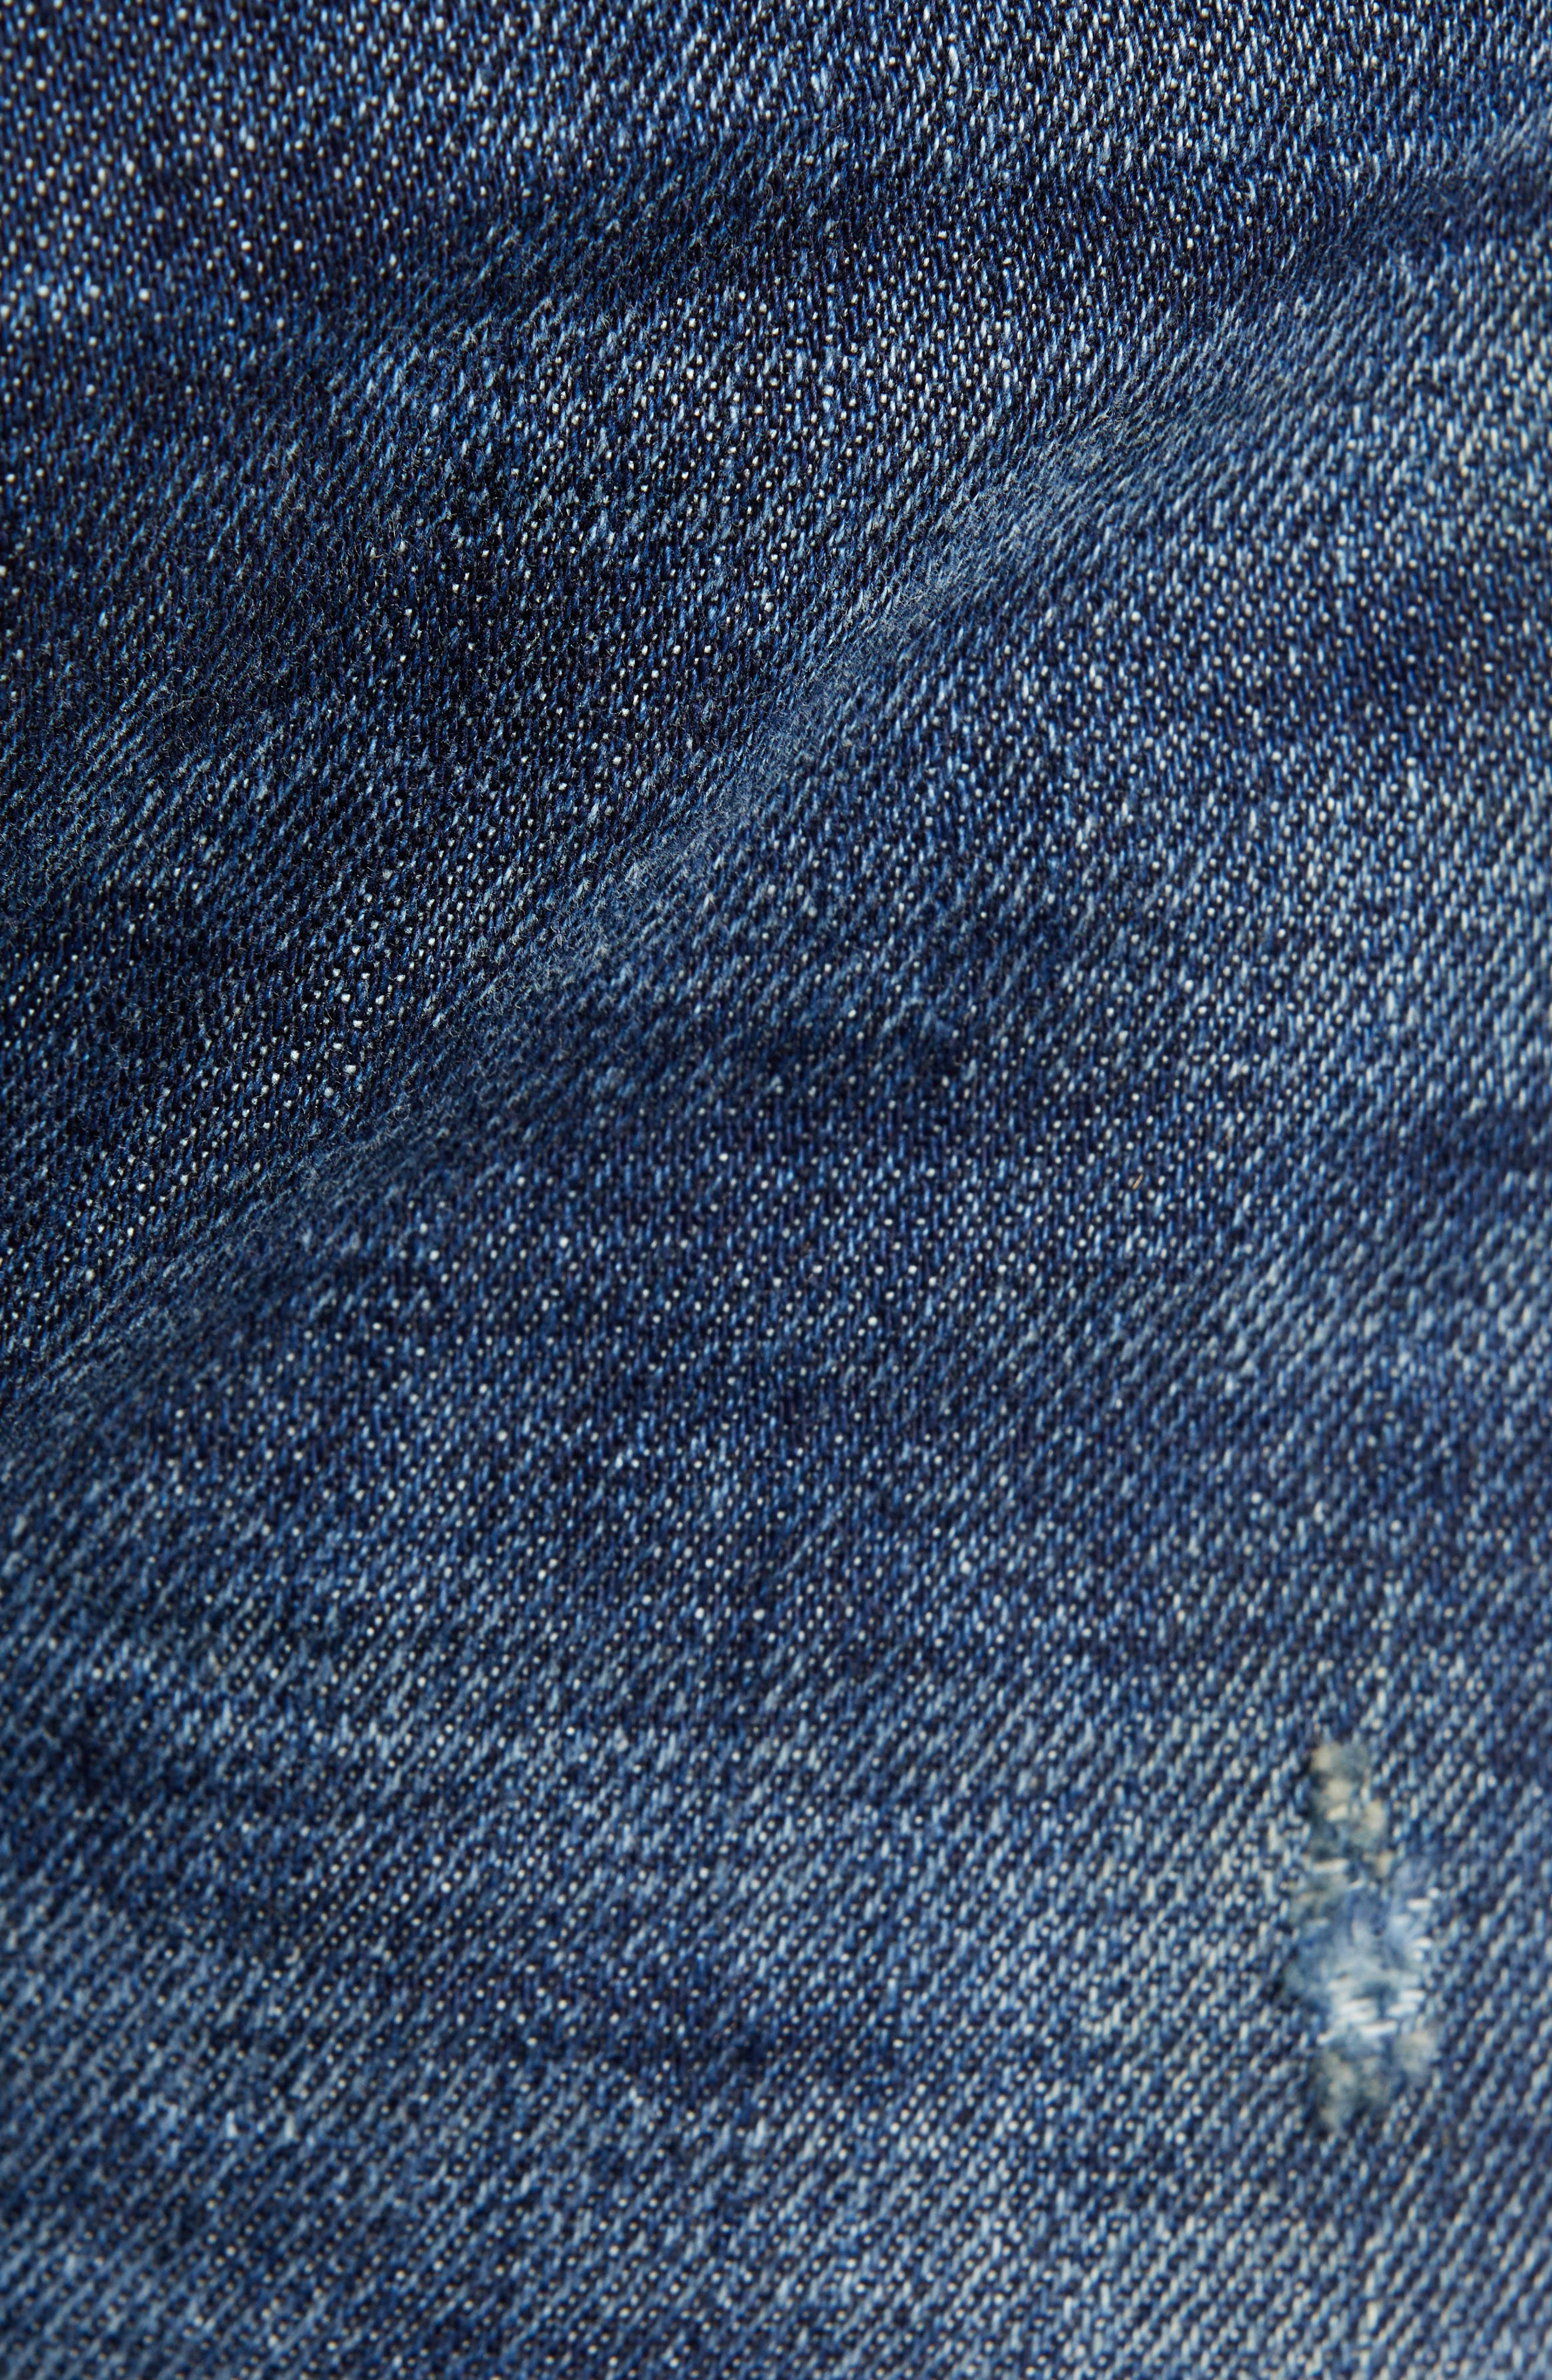 Zatiny Bootcut Jeans,                             Alternate thumbnail 5, color,                             087AT